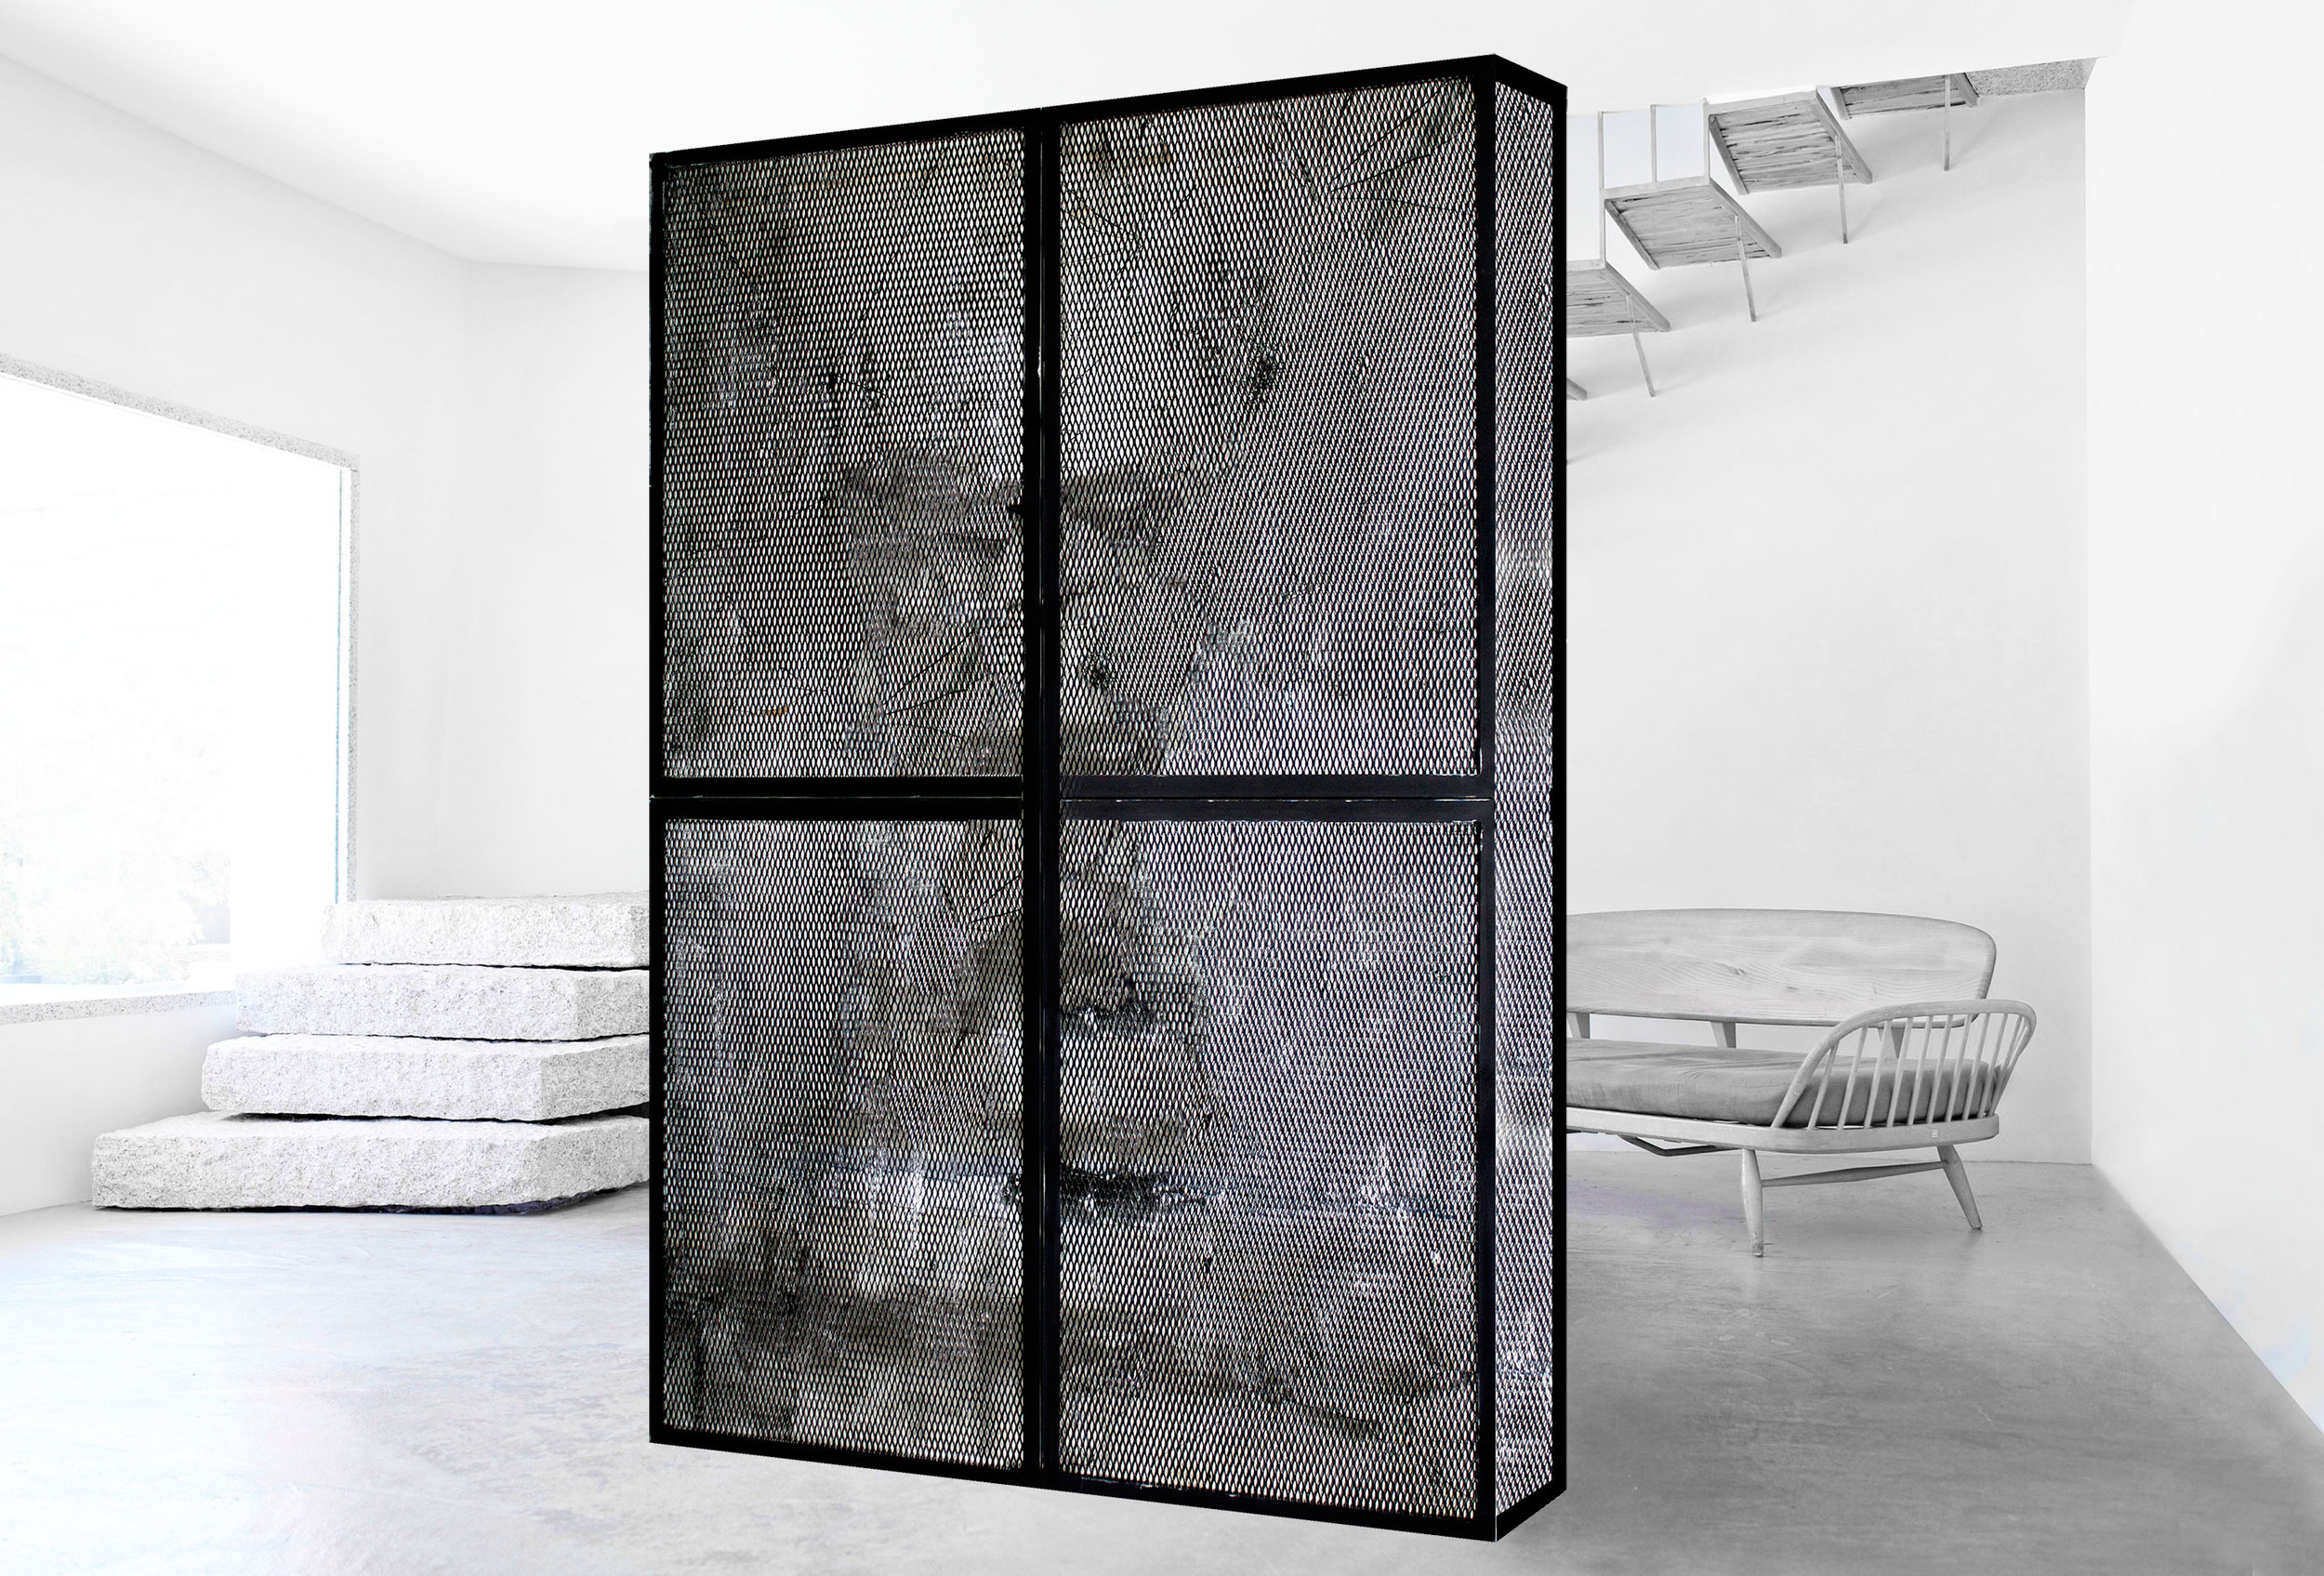 Monolith - Steel and Steel mesh -sizes variable, 2015